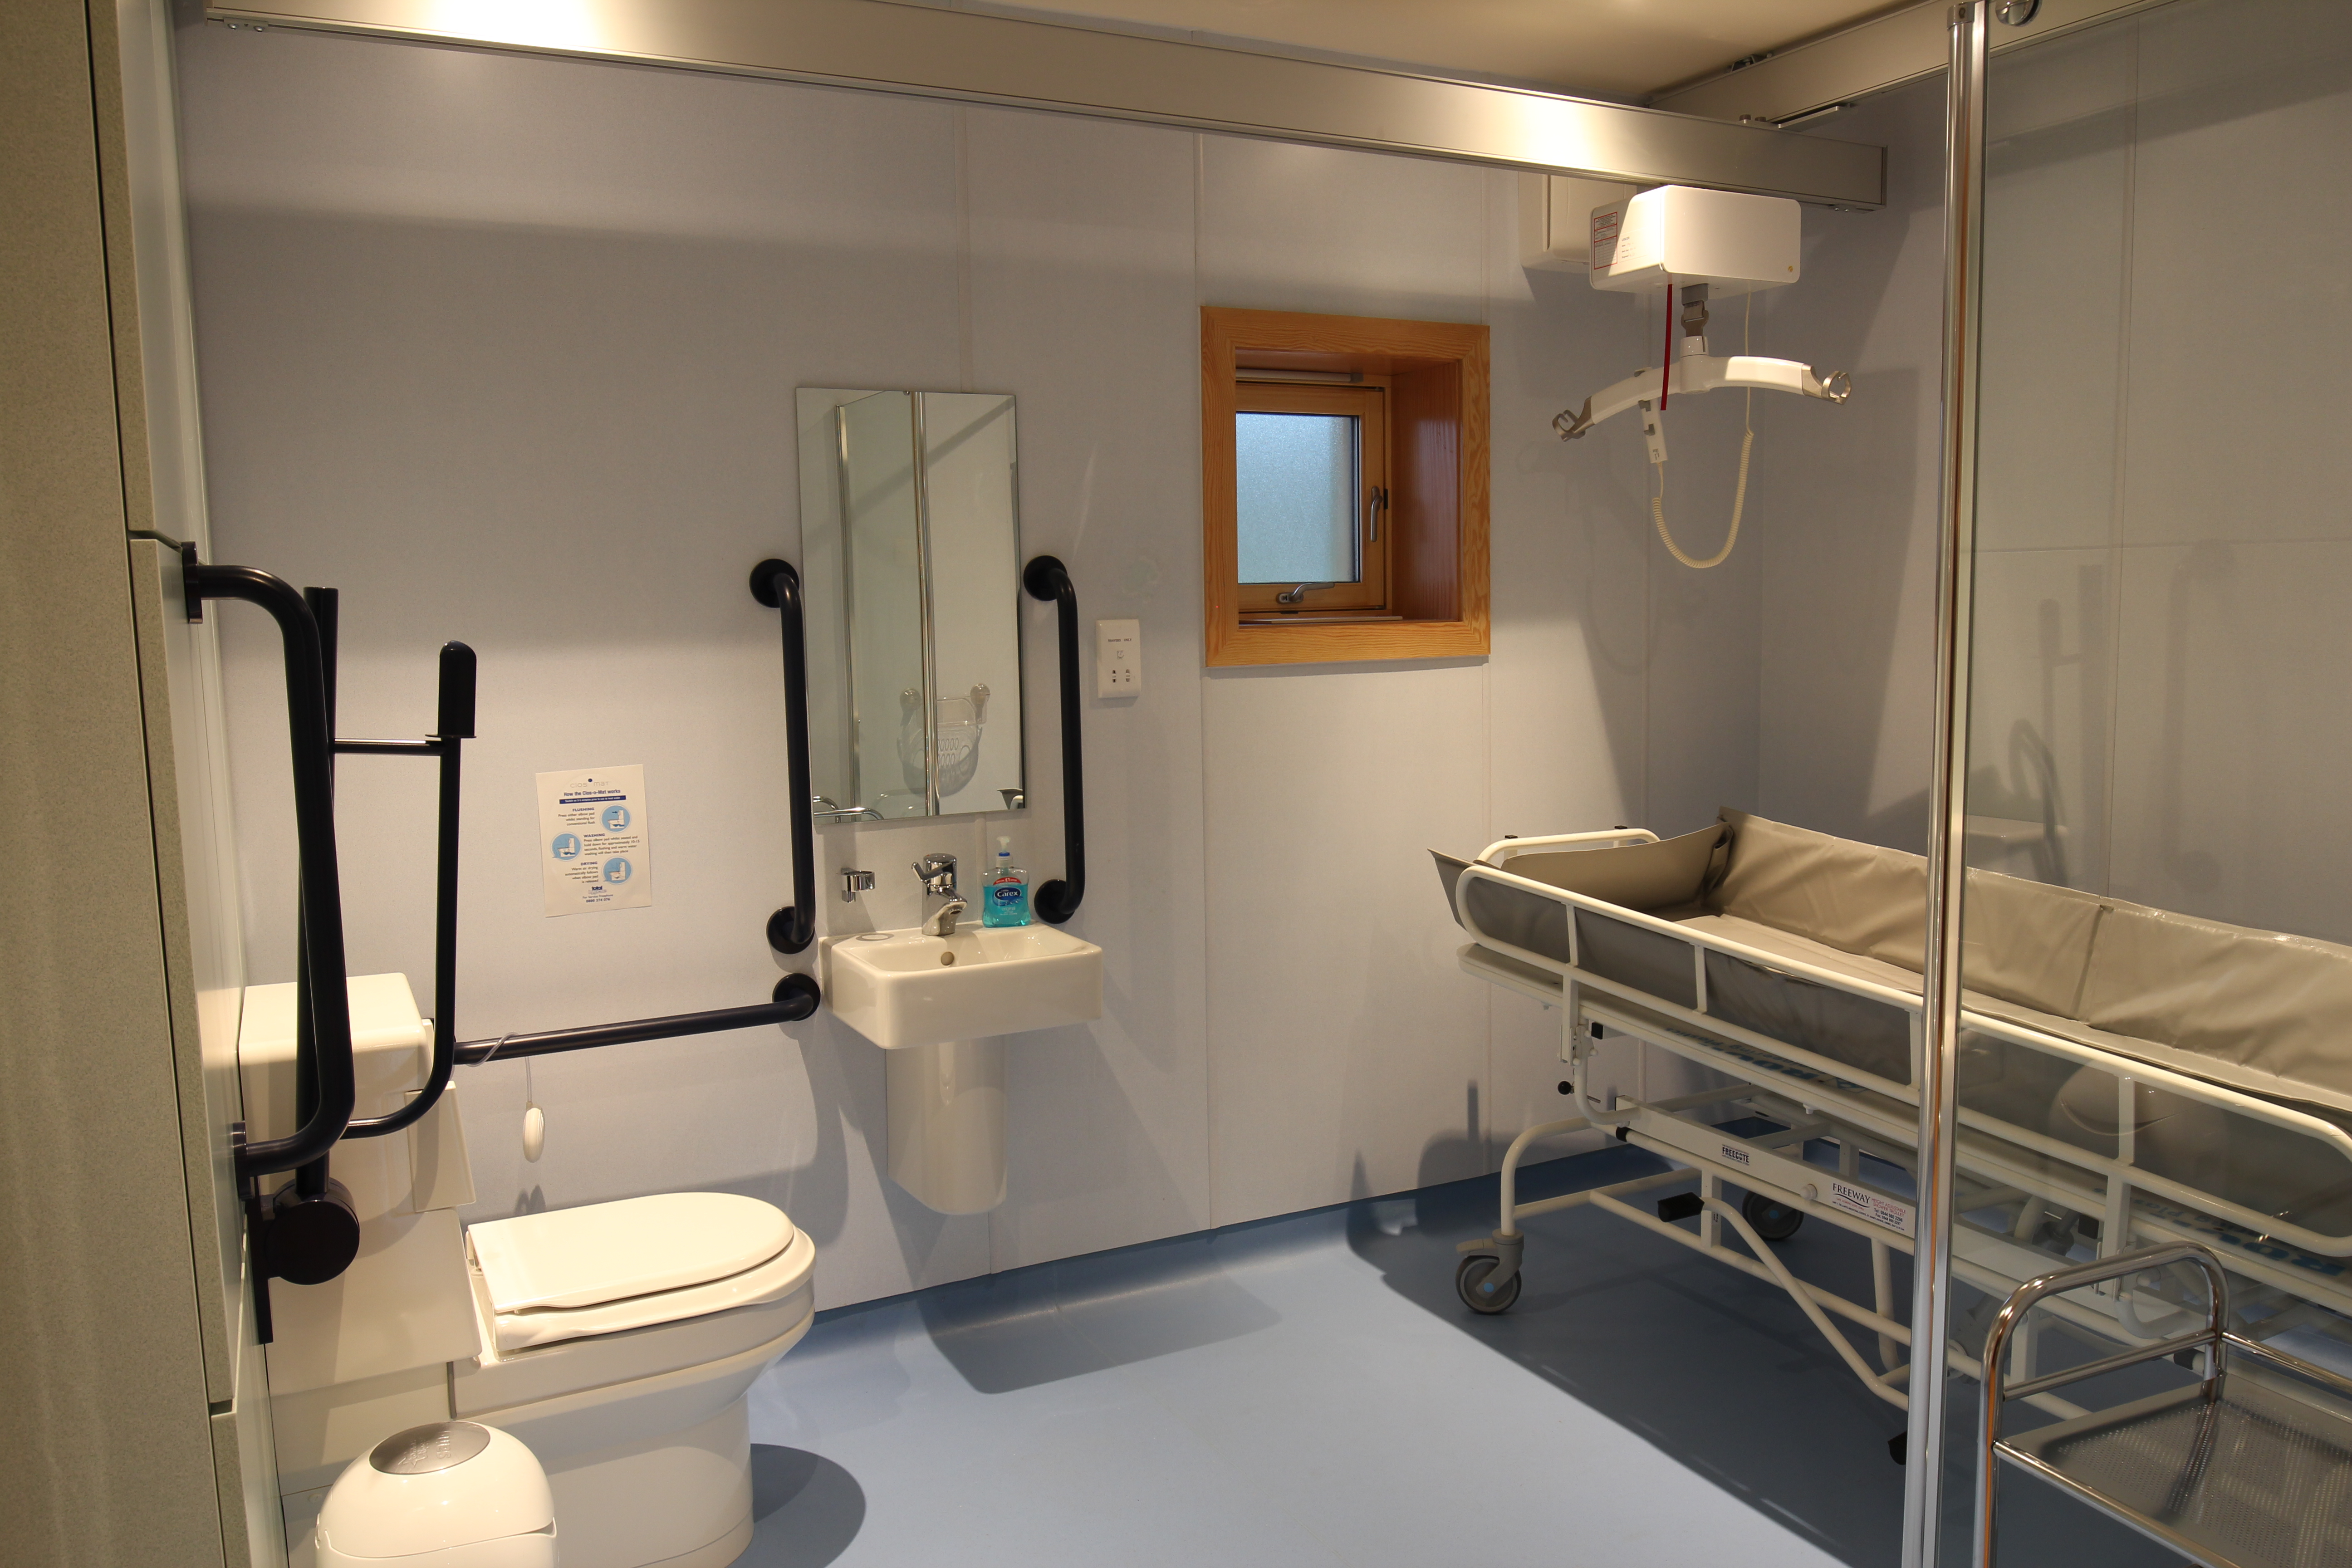 hygiene test tasking disabled and trolley web operated battery tr safety multi assisted with that a all related work bed meets your shower products needs for showering working